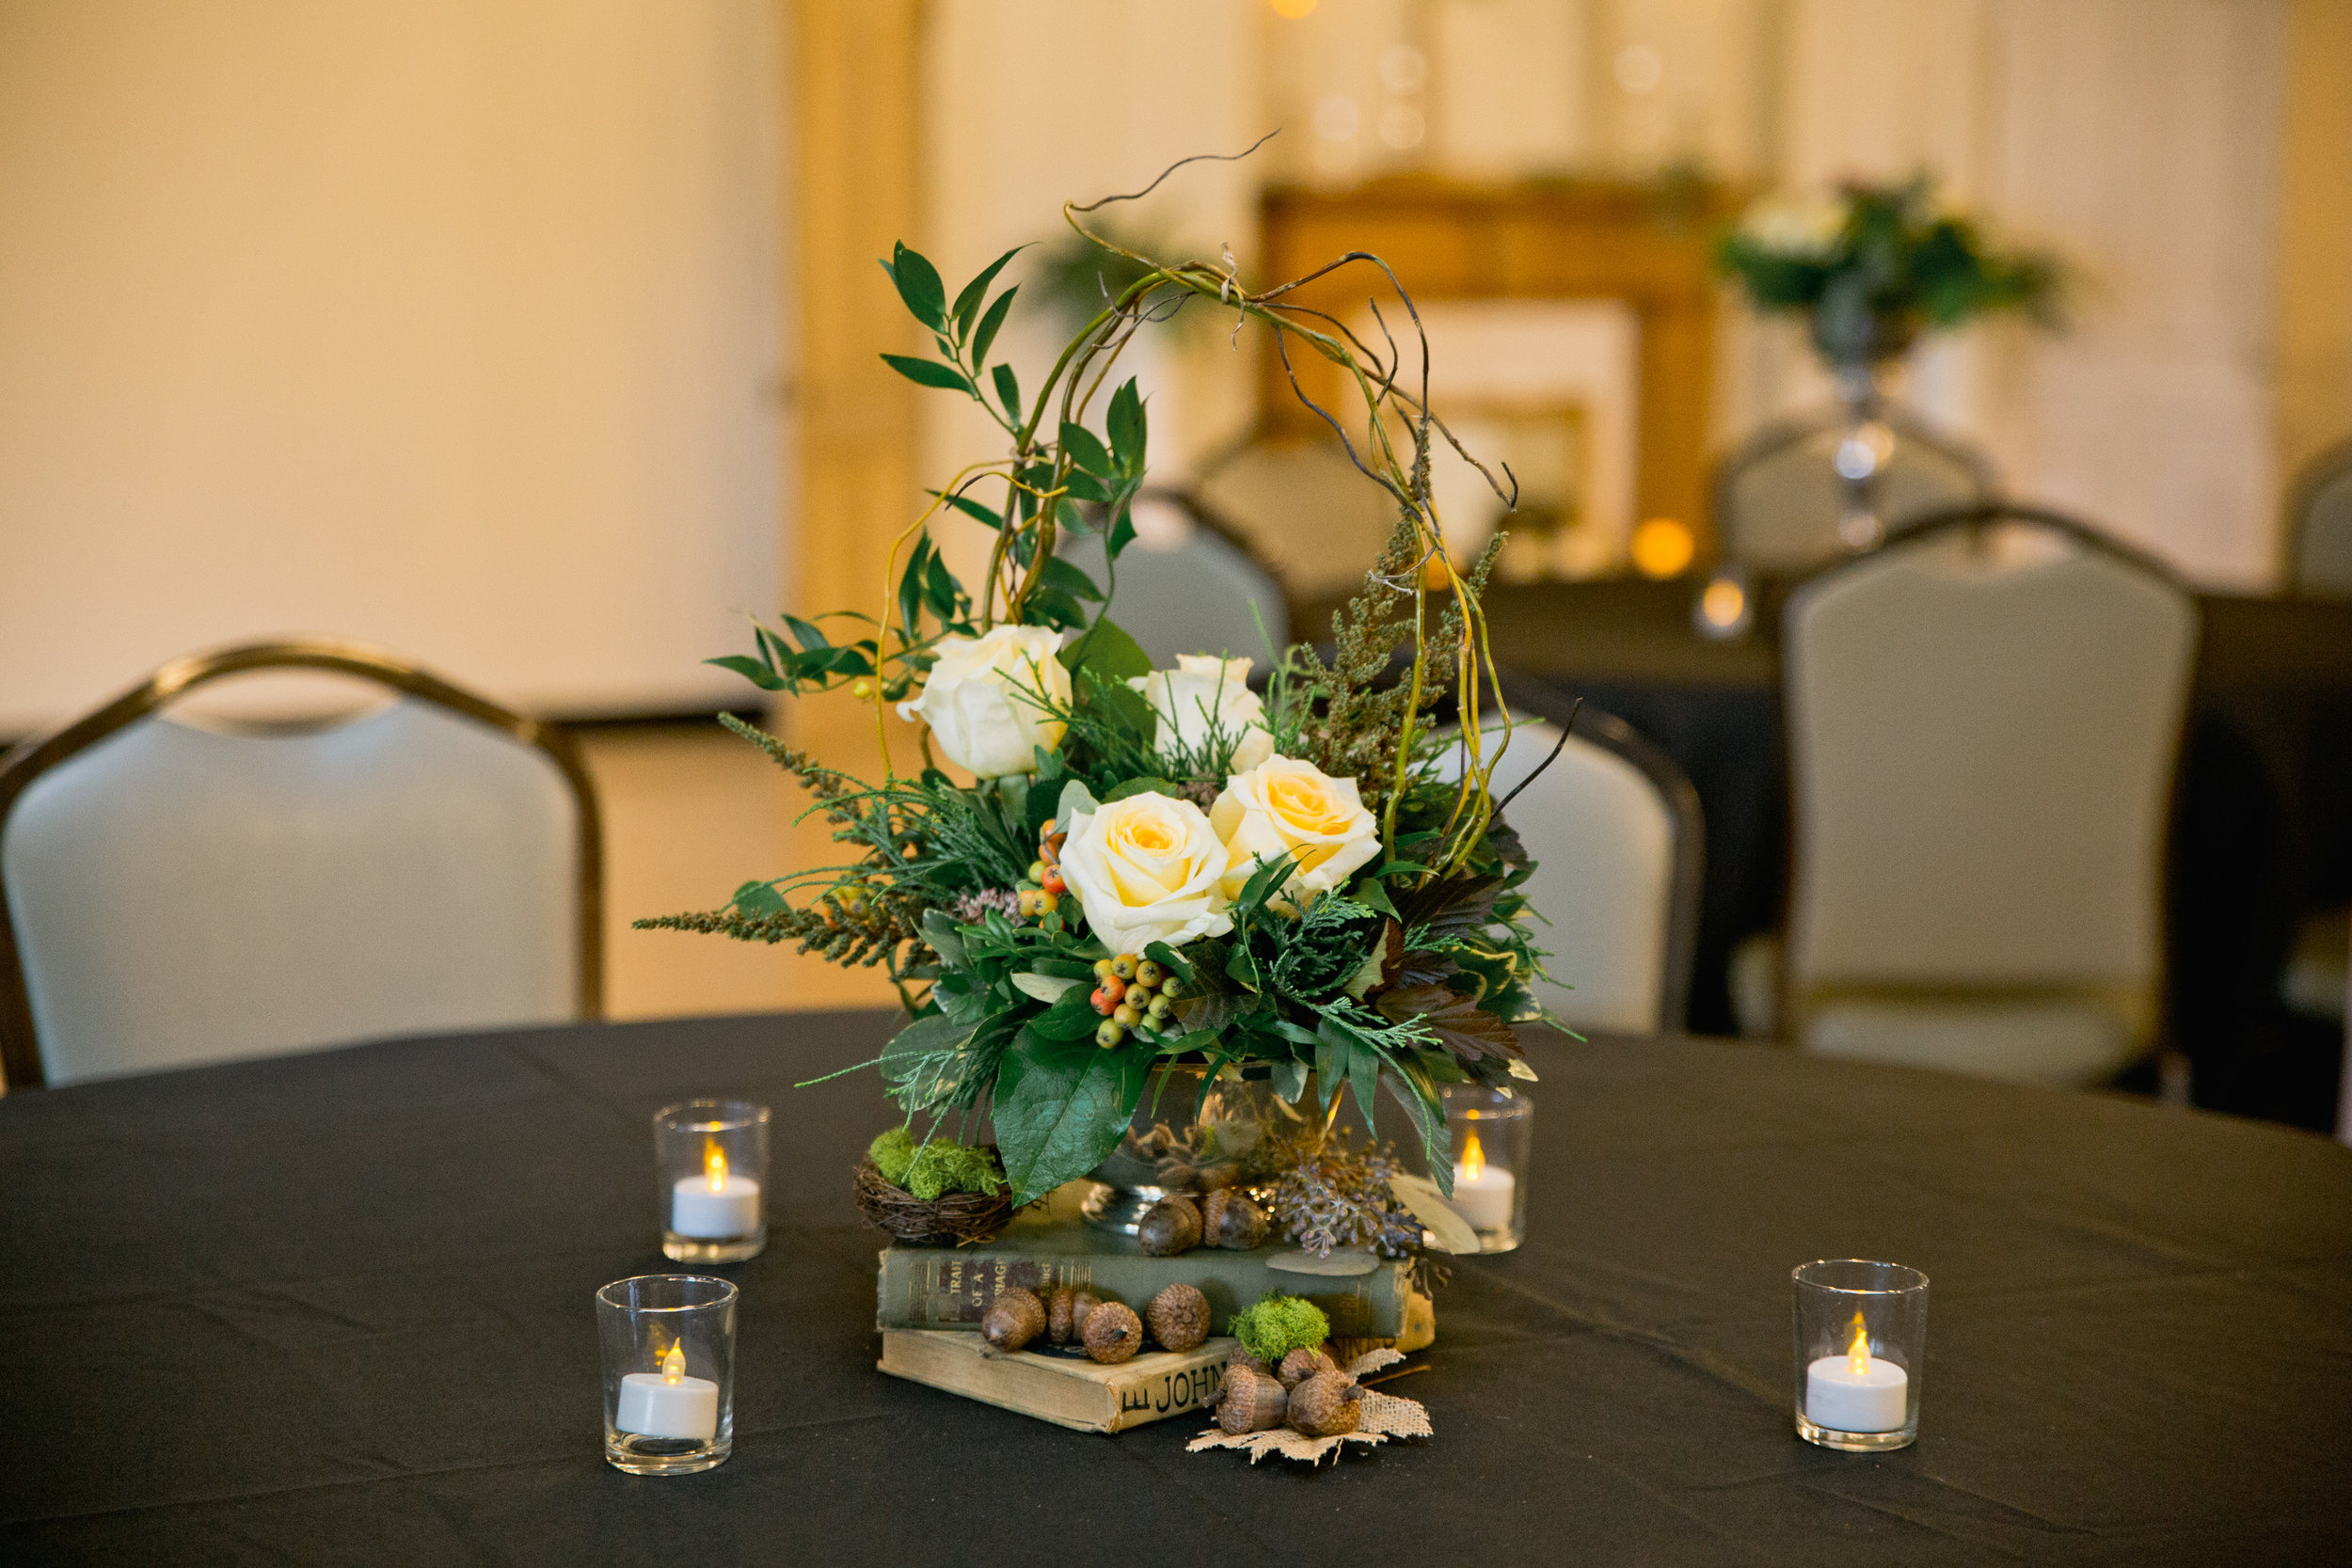 drift salvage & decor is the premier party rental provider in the Des Moines area and central Iowa